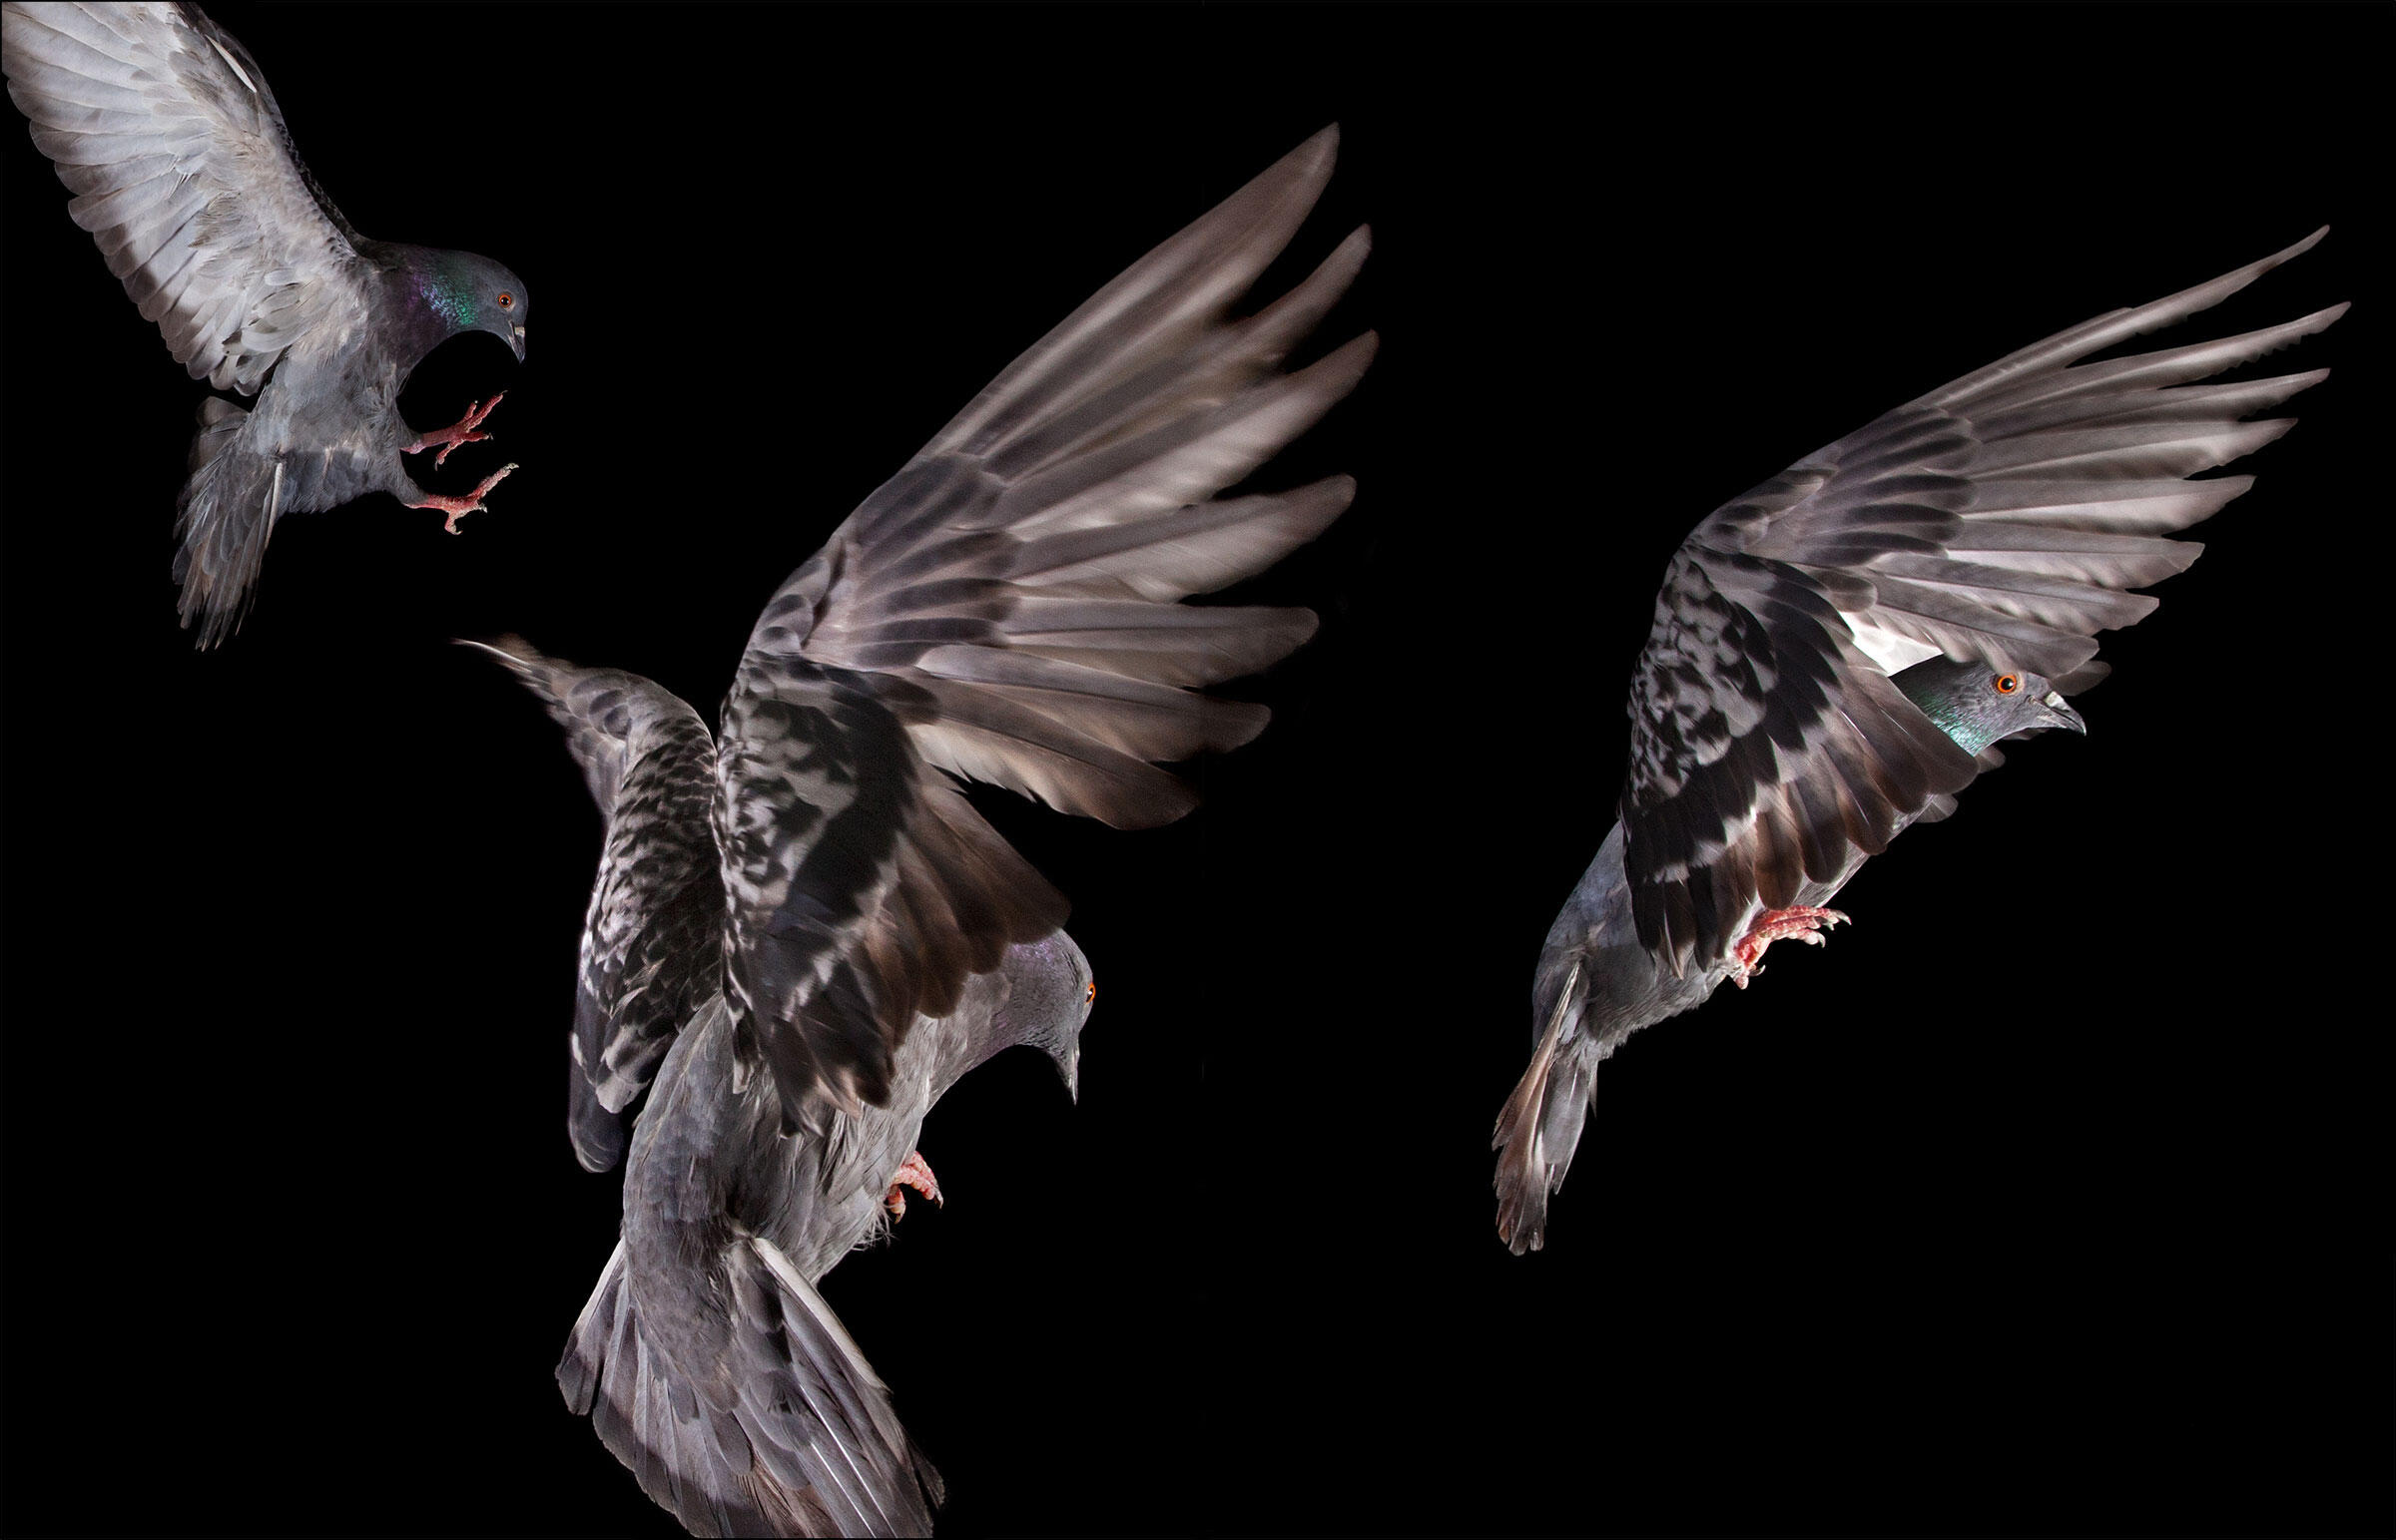 Why Pigeons Clap Their Wings How Wing Clapping Works Audubon Get_appclick here to download as mp3 (5.11 mb). why pigeons clap their wings how